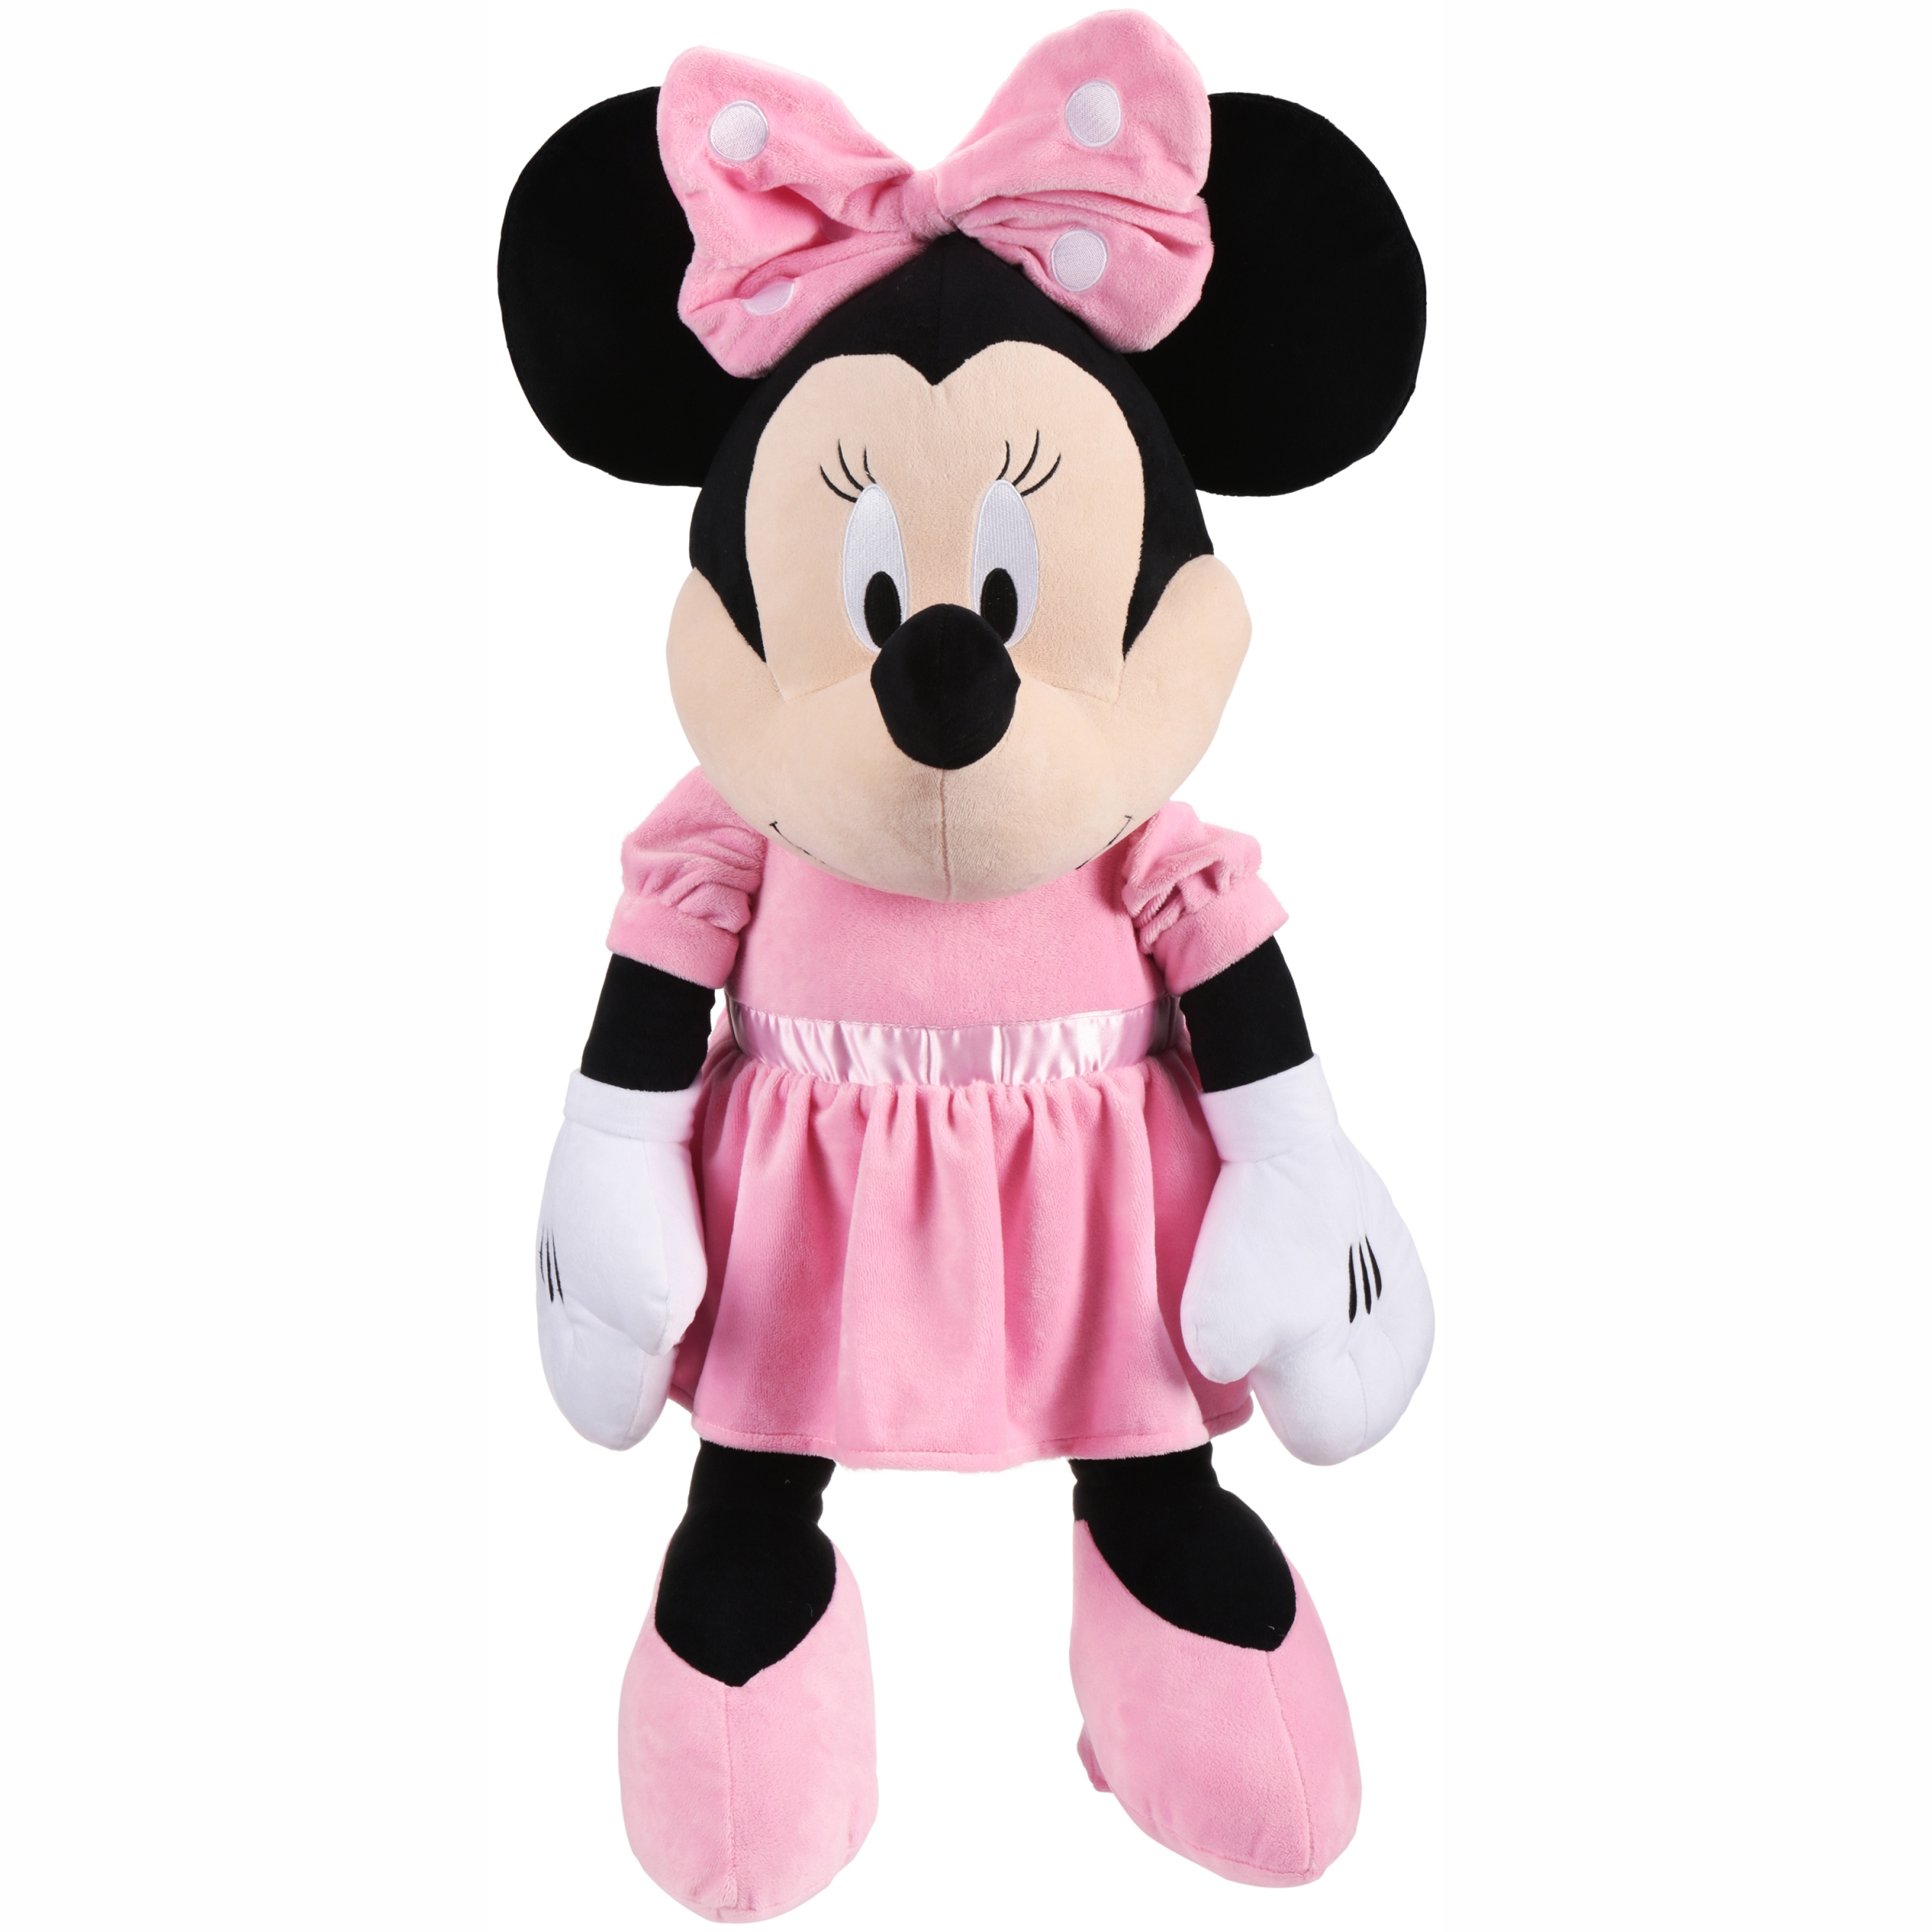 Disney Baby Minnie Mouse Doll